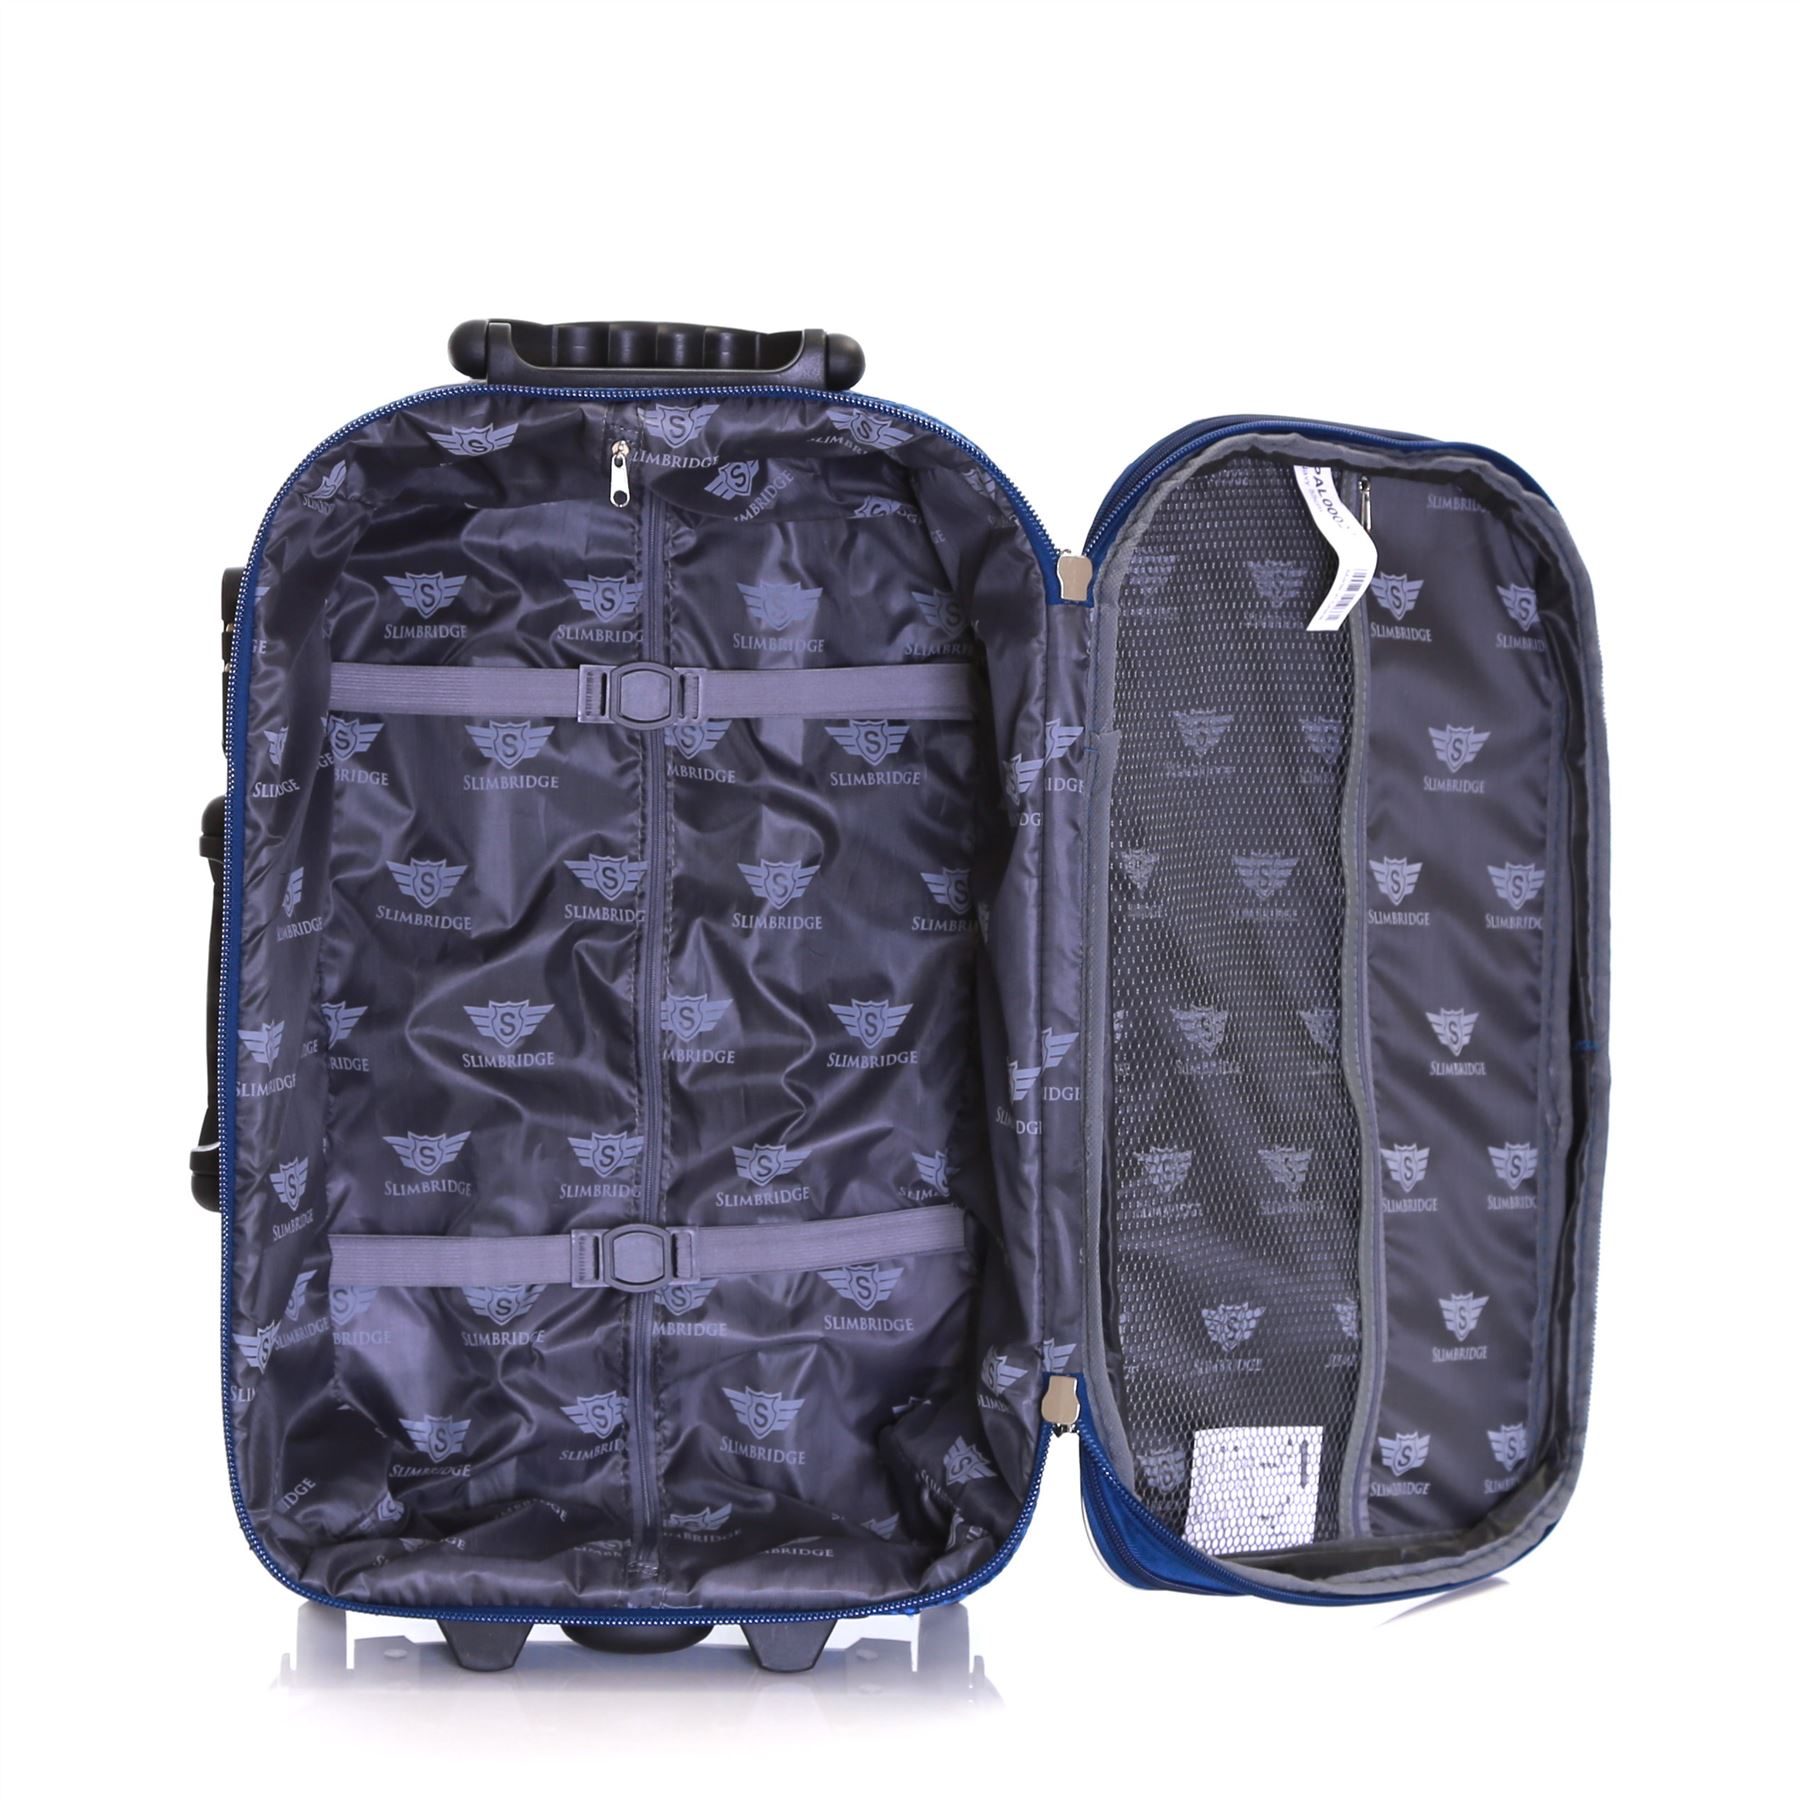 Set-of-2-Lightweight-Expandable-Luggage-Trolleys-Suitcases-Cases-Bags-Set thumbnail 9